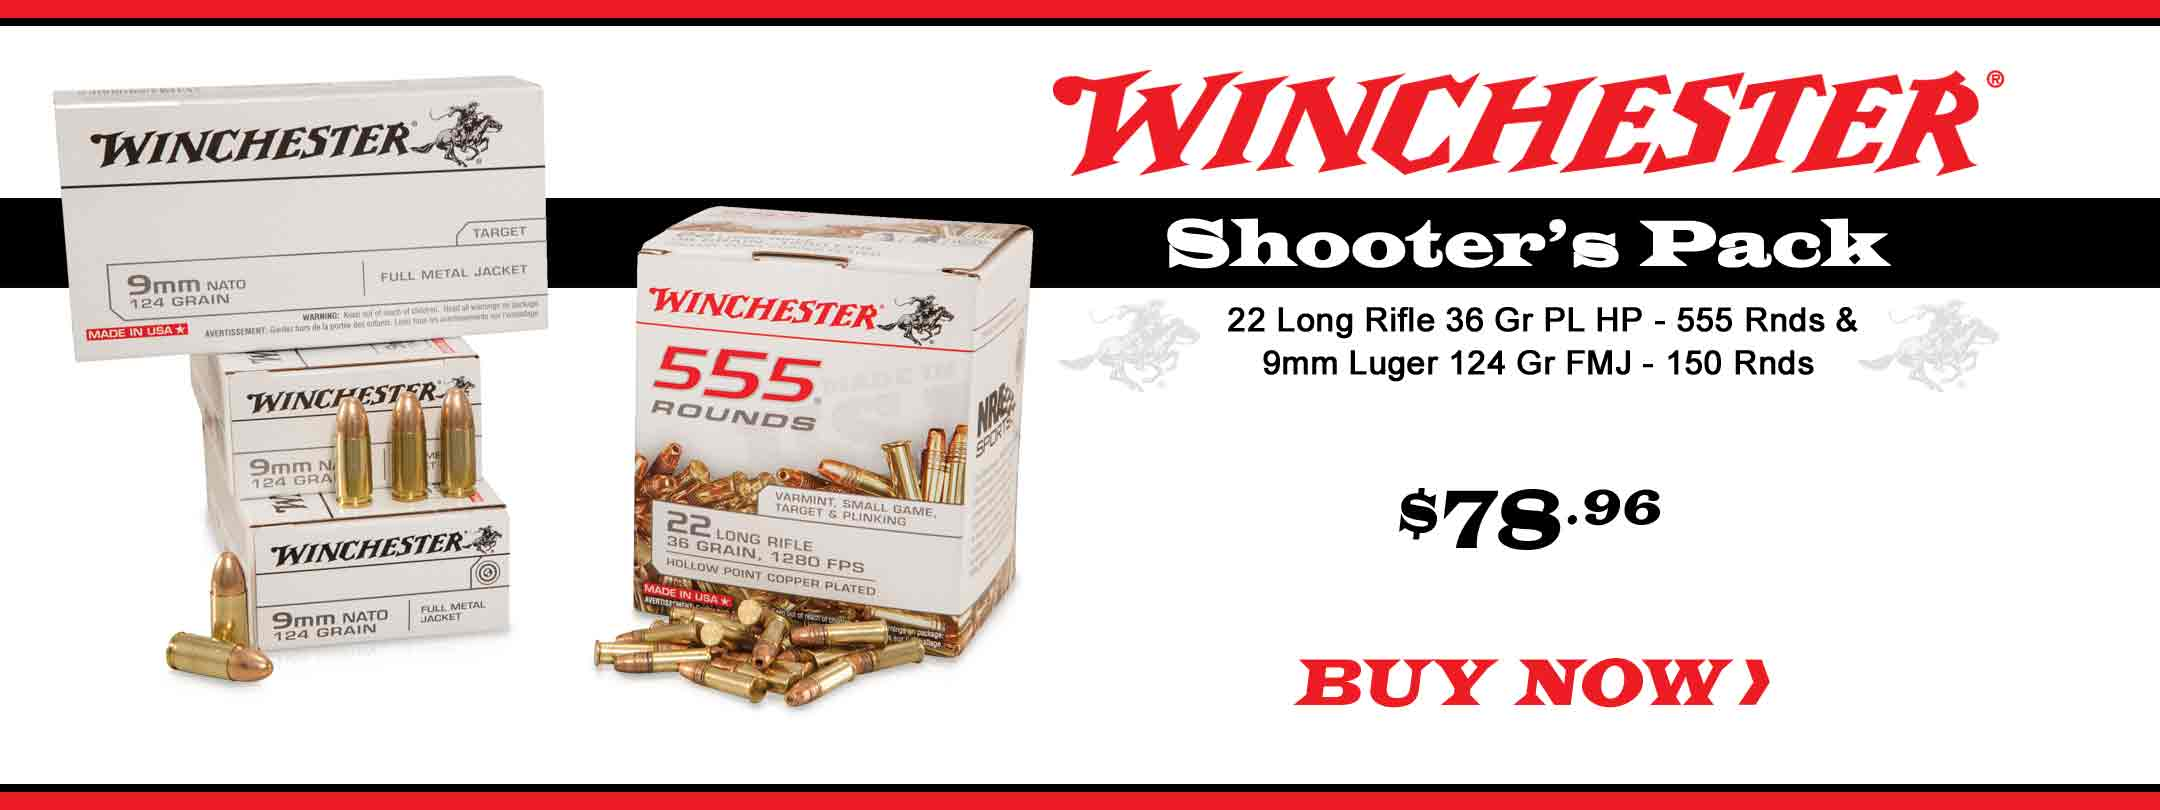 Winchester Shooter's Pack